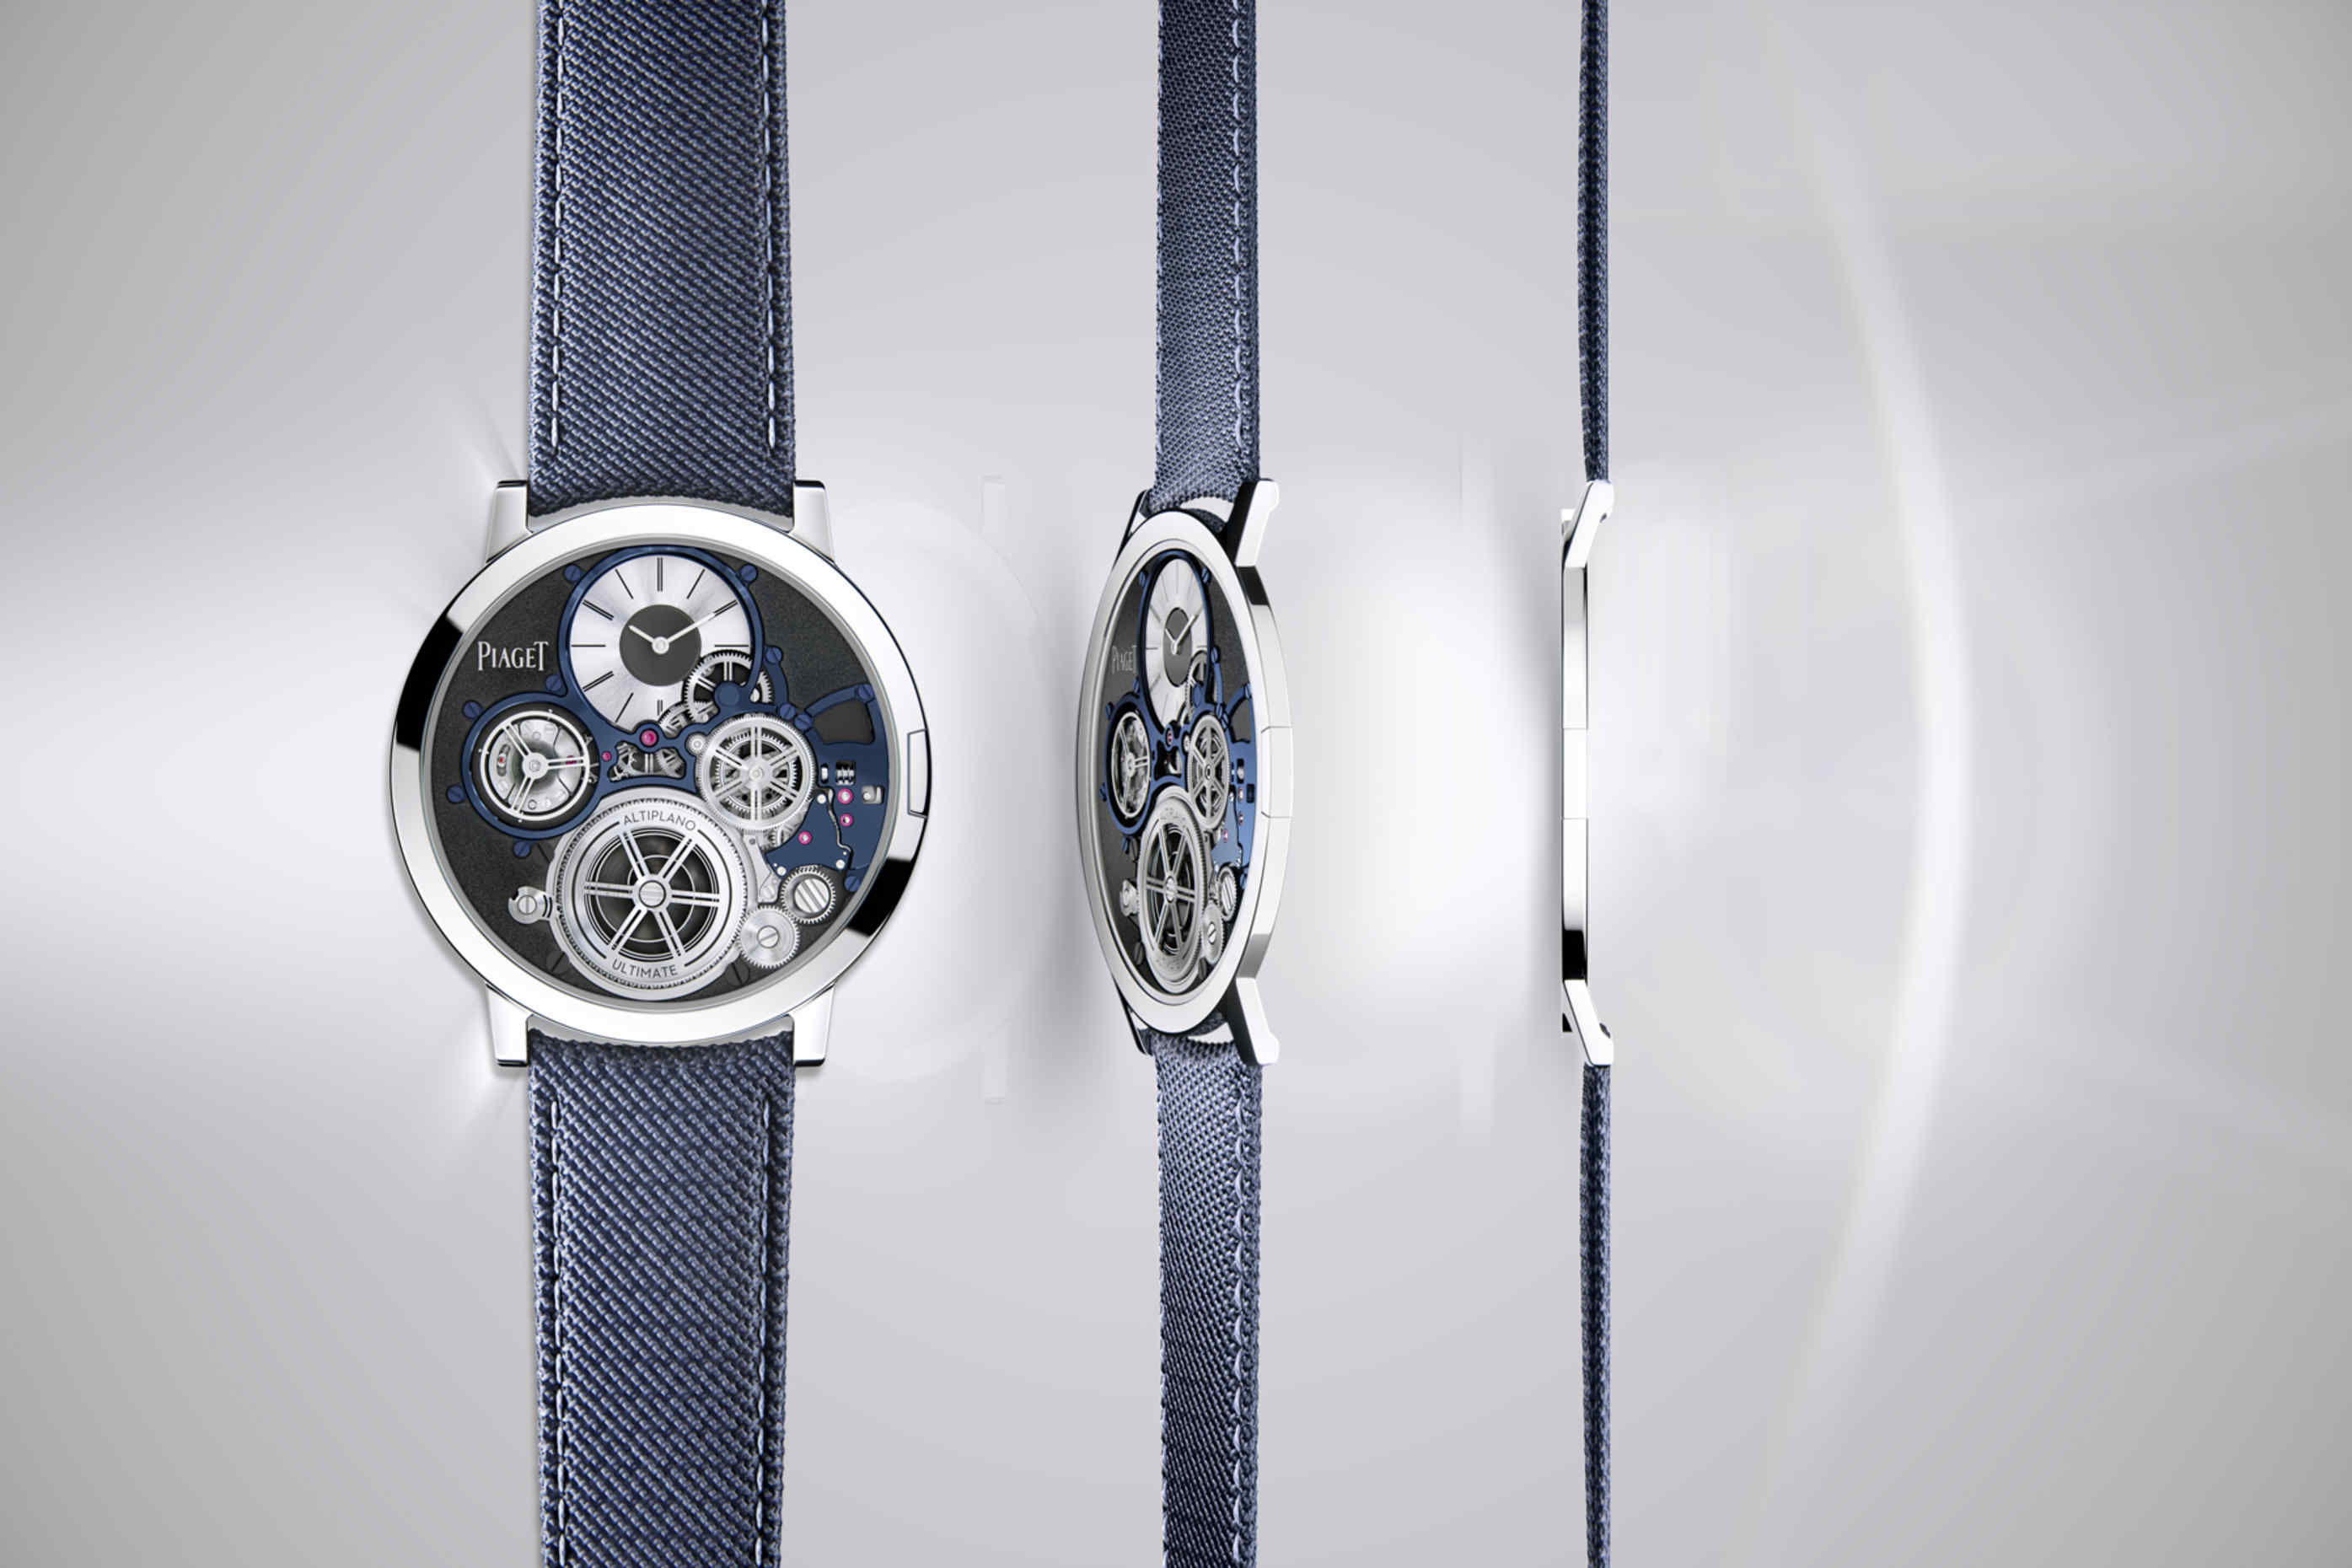 Piaget launches the thinnest watch in history